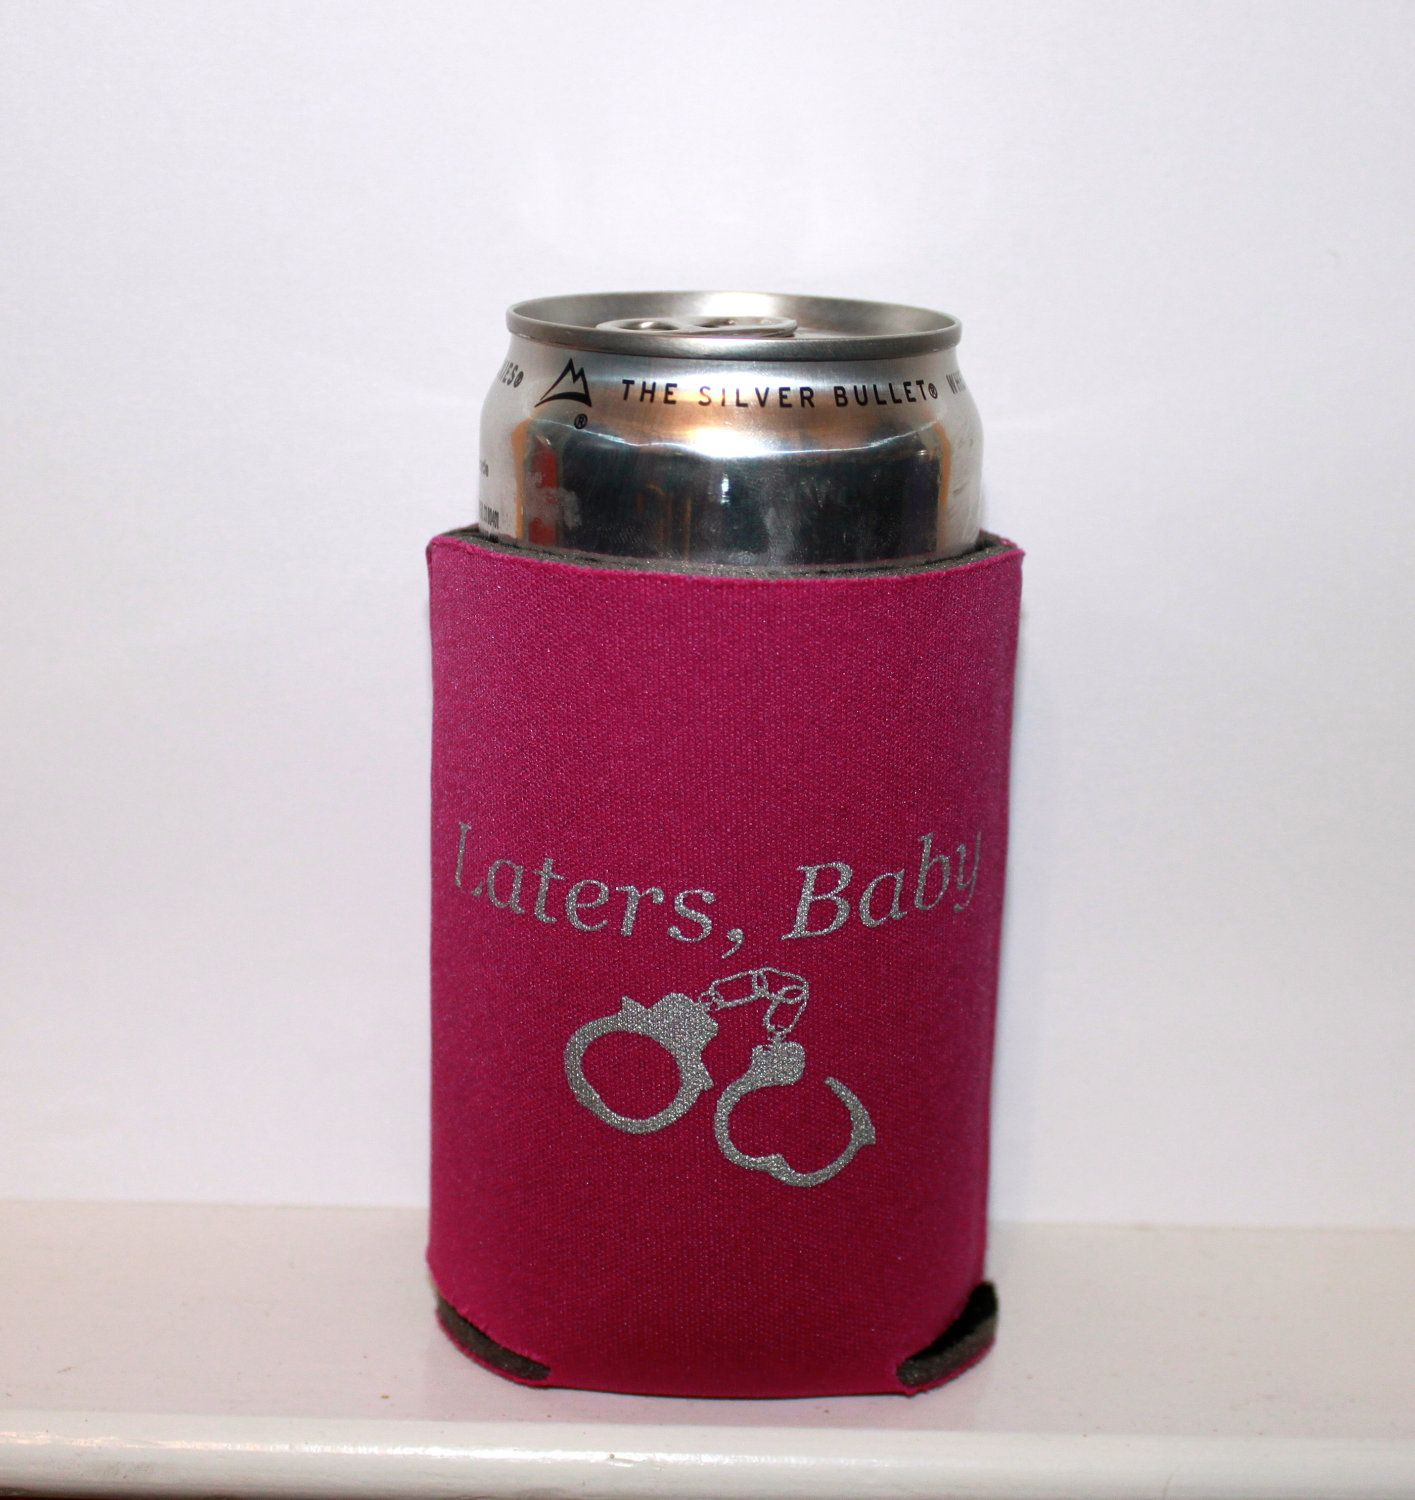 Fuschia Or Black Bachelorette Party Idea Fifty Shades Of Grey Koozie Laters Baby Cozy Bee Fifty Shades Party Ideas Black Bachelorette Party Bachelorette Party